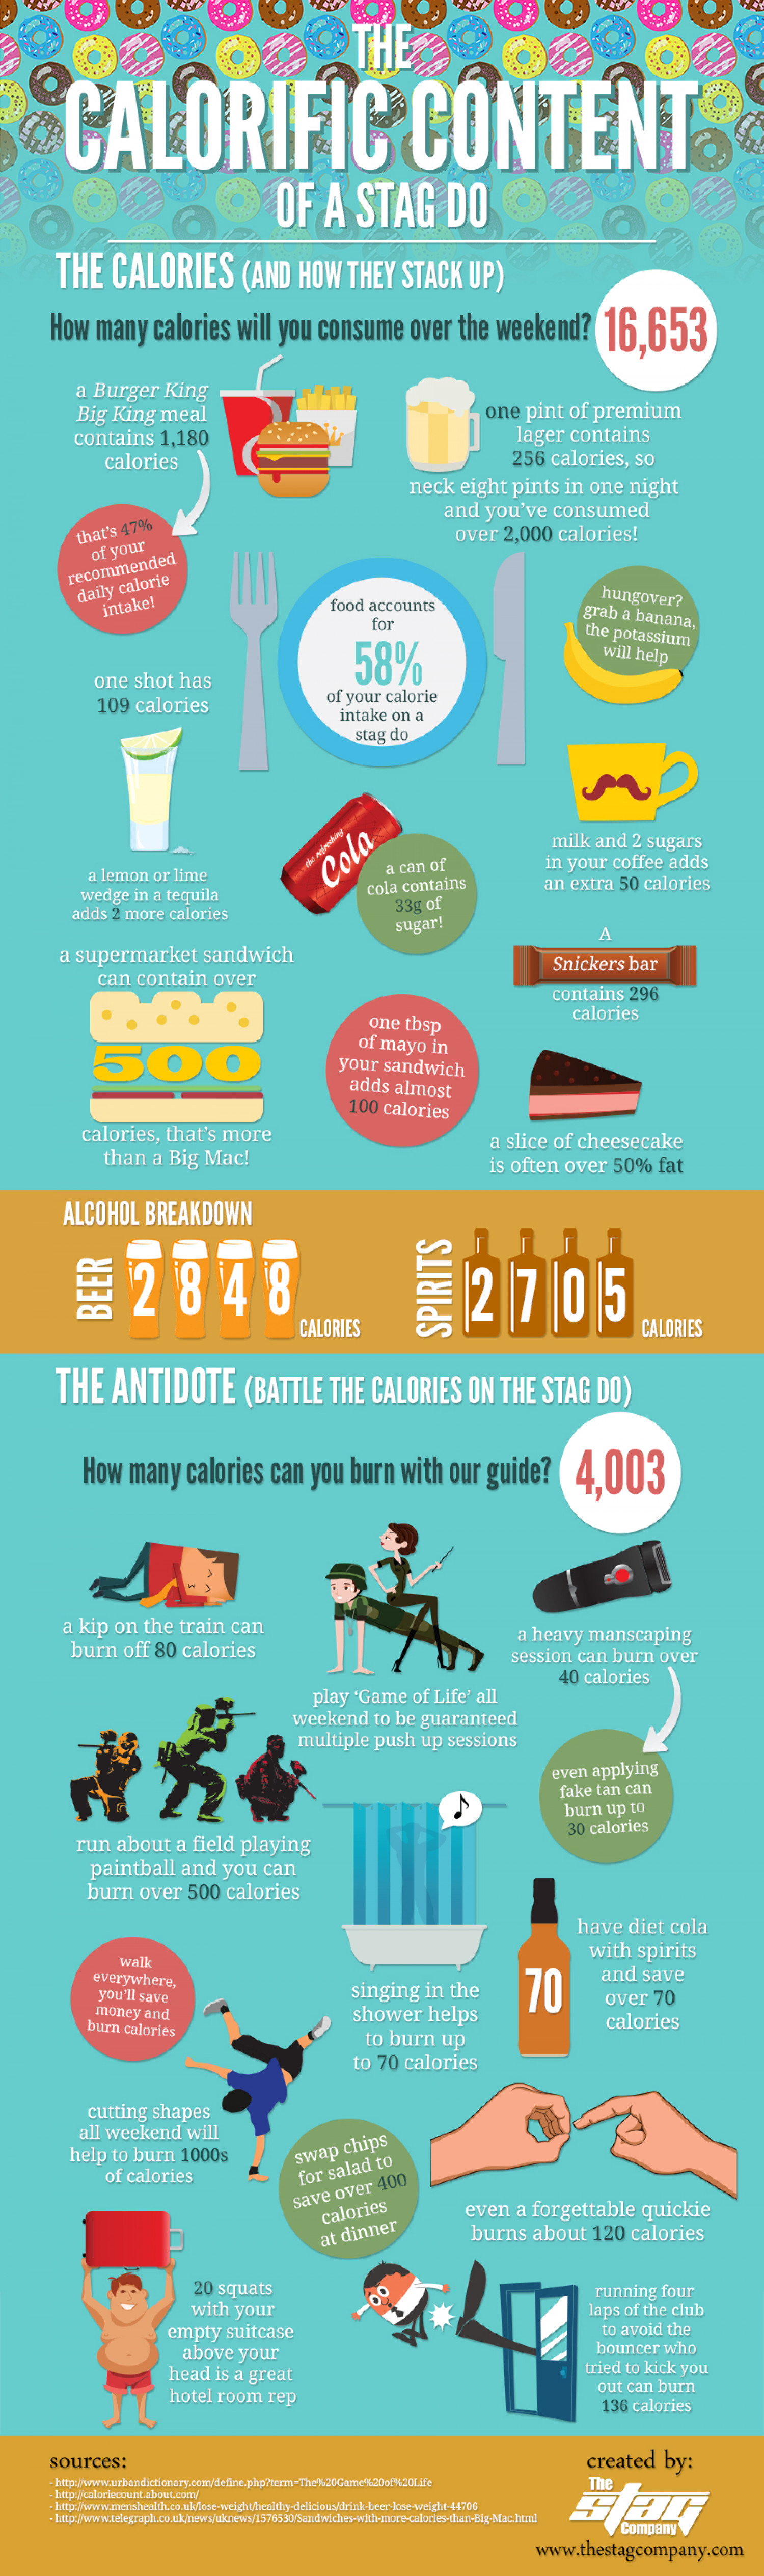 The Calorific Content of a Stag Do Infographic